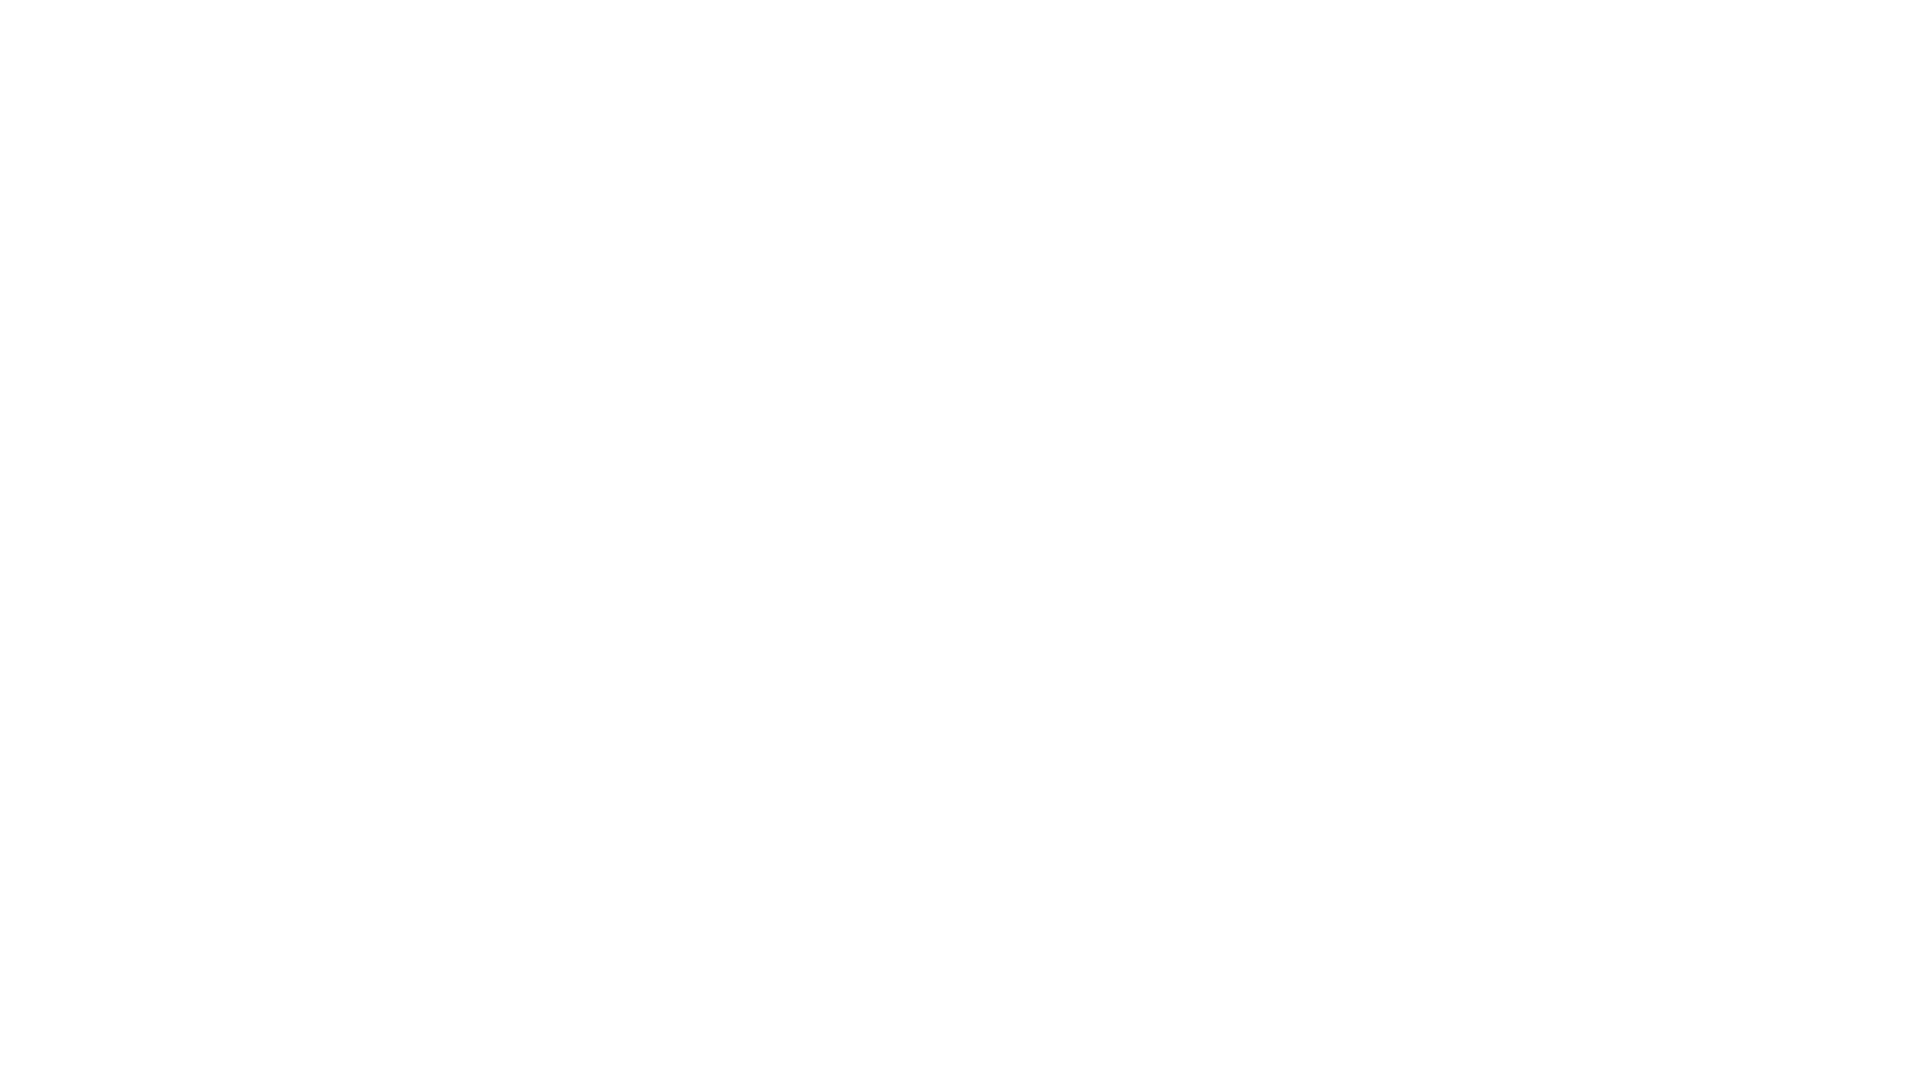 podcast, period. episode 9: projared and the attack of the.